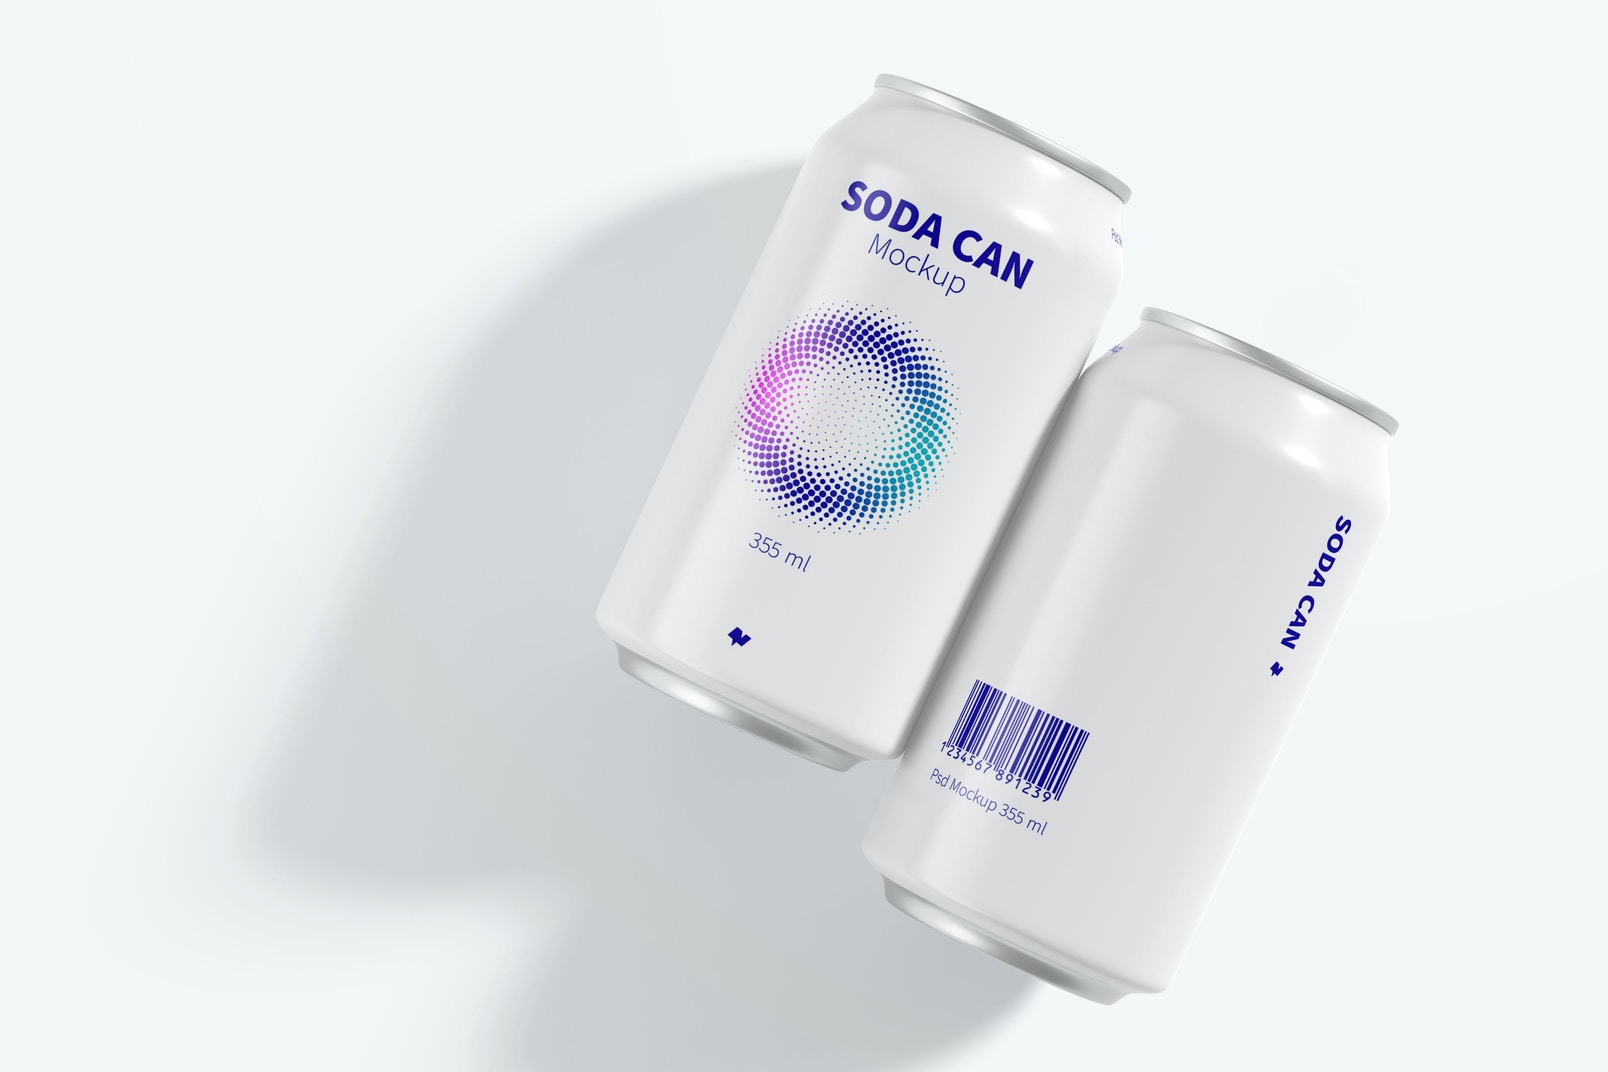 355 ml Soda Cans Mockup, Top View